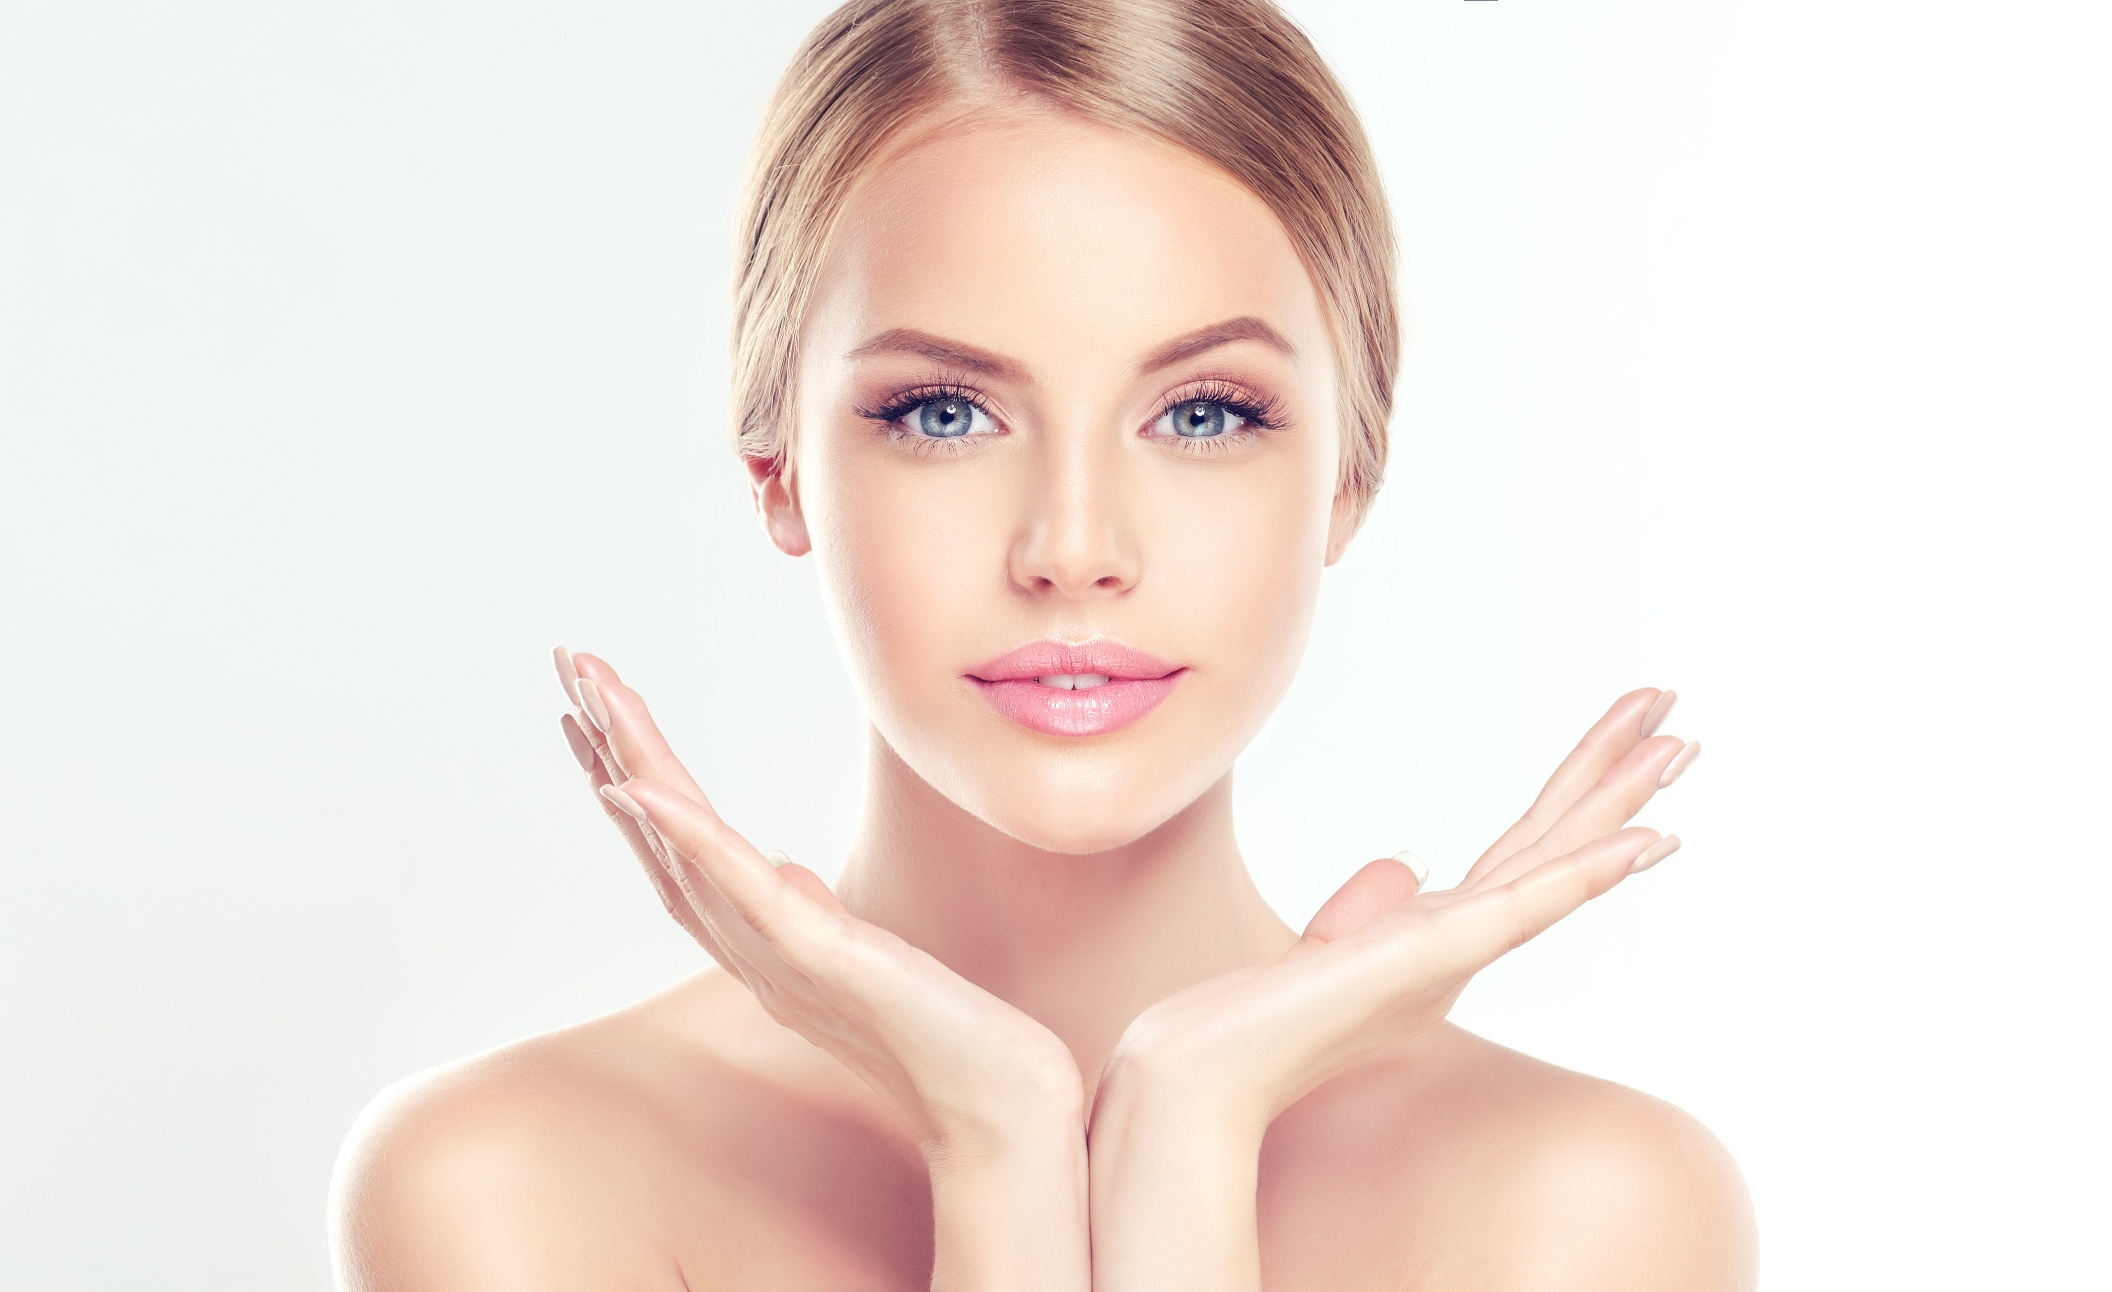 Cosmetic Procedure Trends to Watch for in 2019